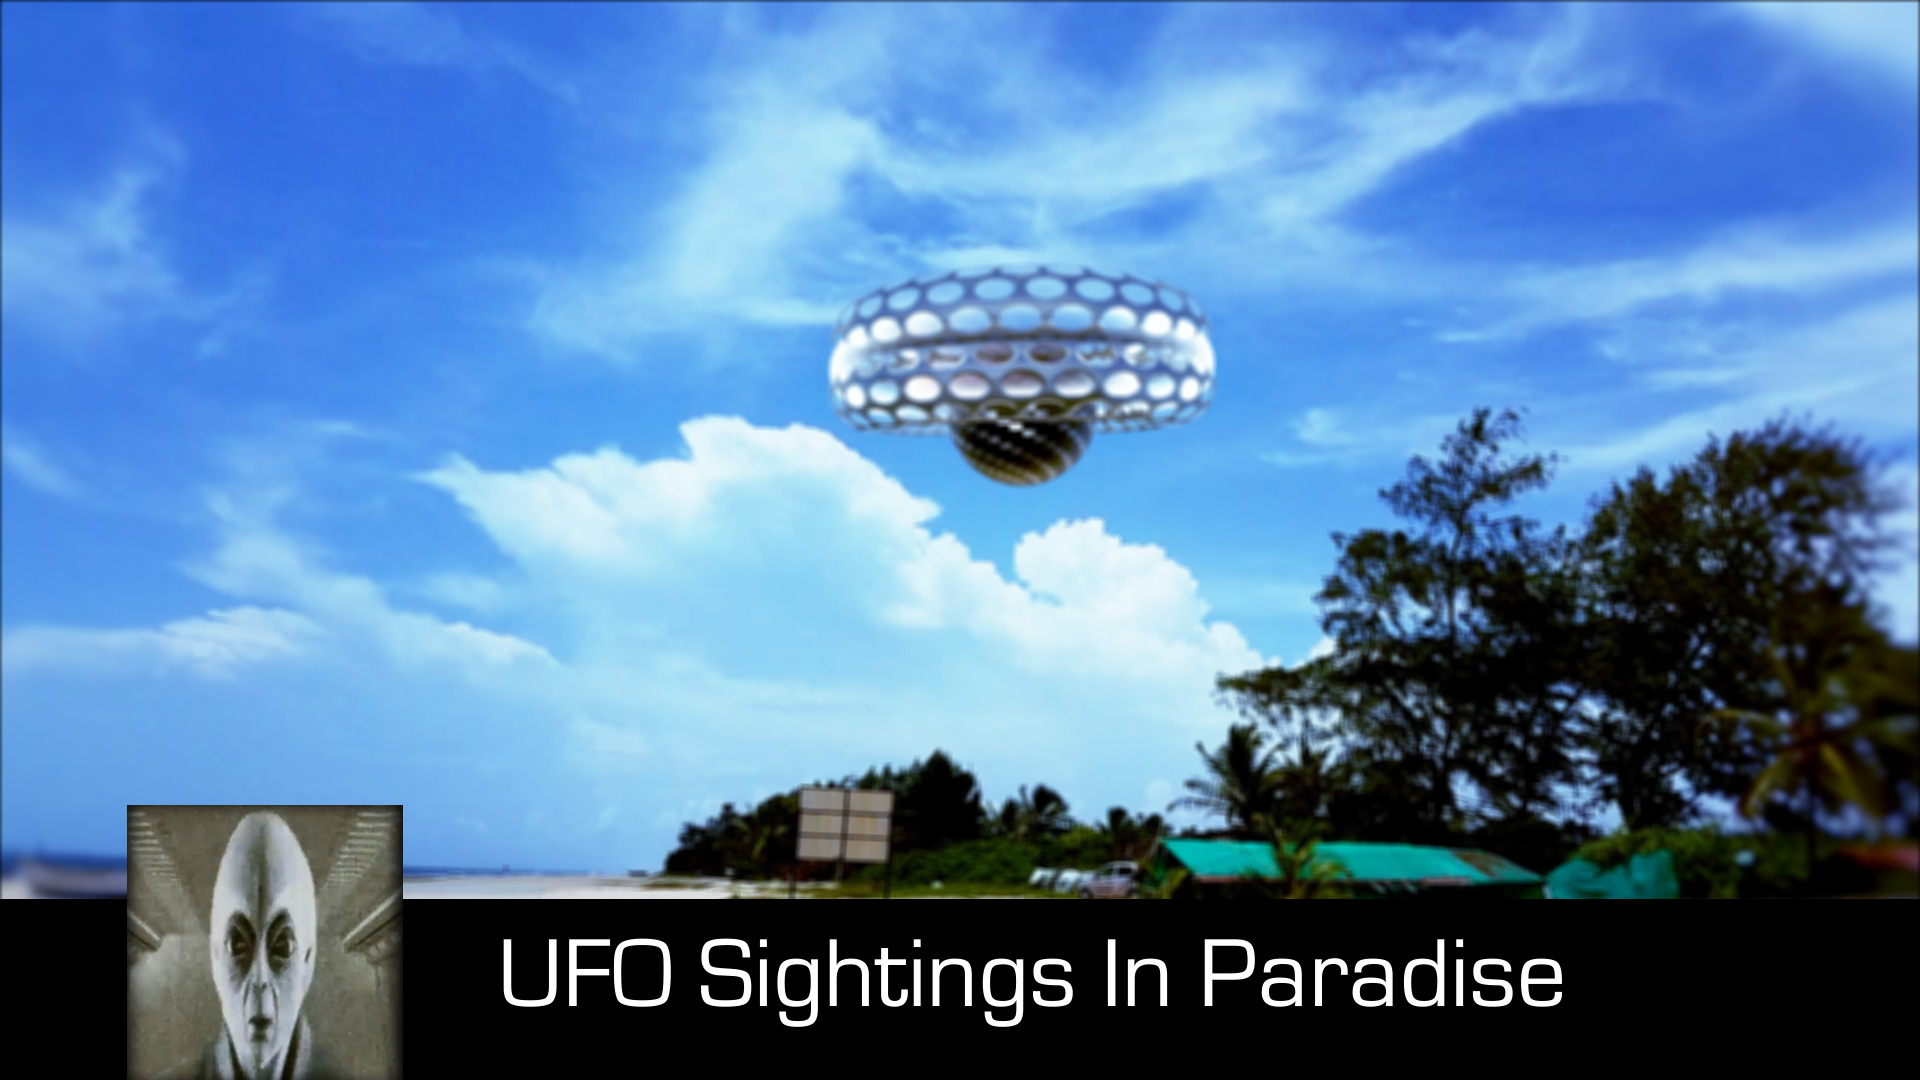 UFO Sightings In Paradise September 7th 2017